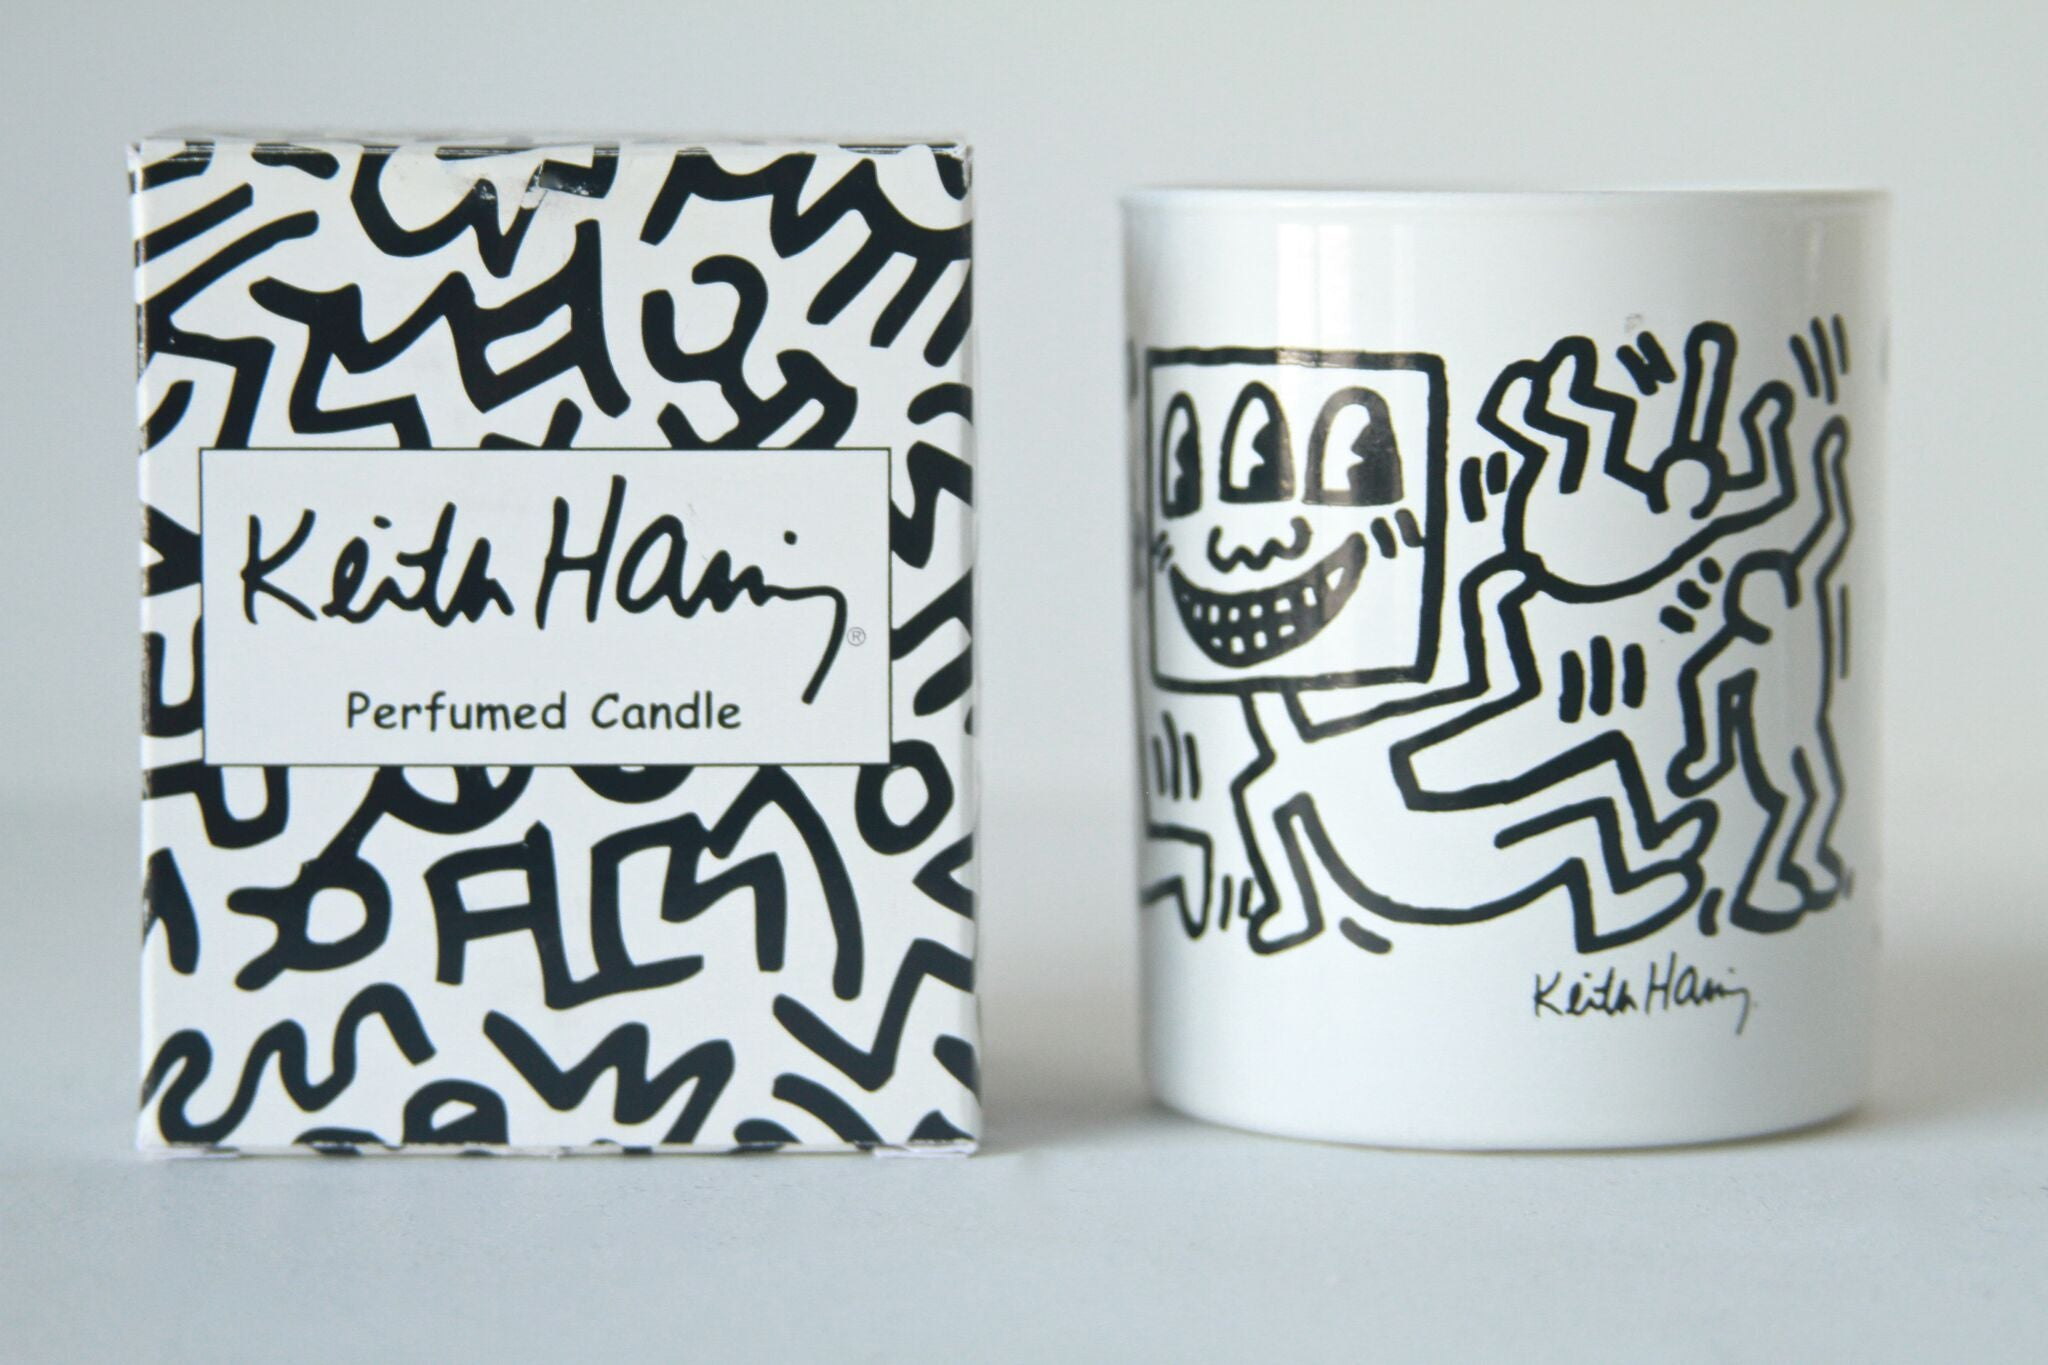 Keith Haring White Candle